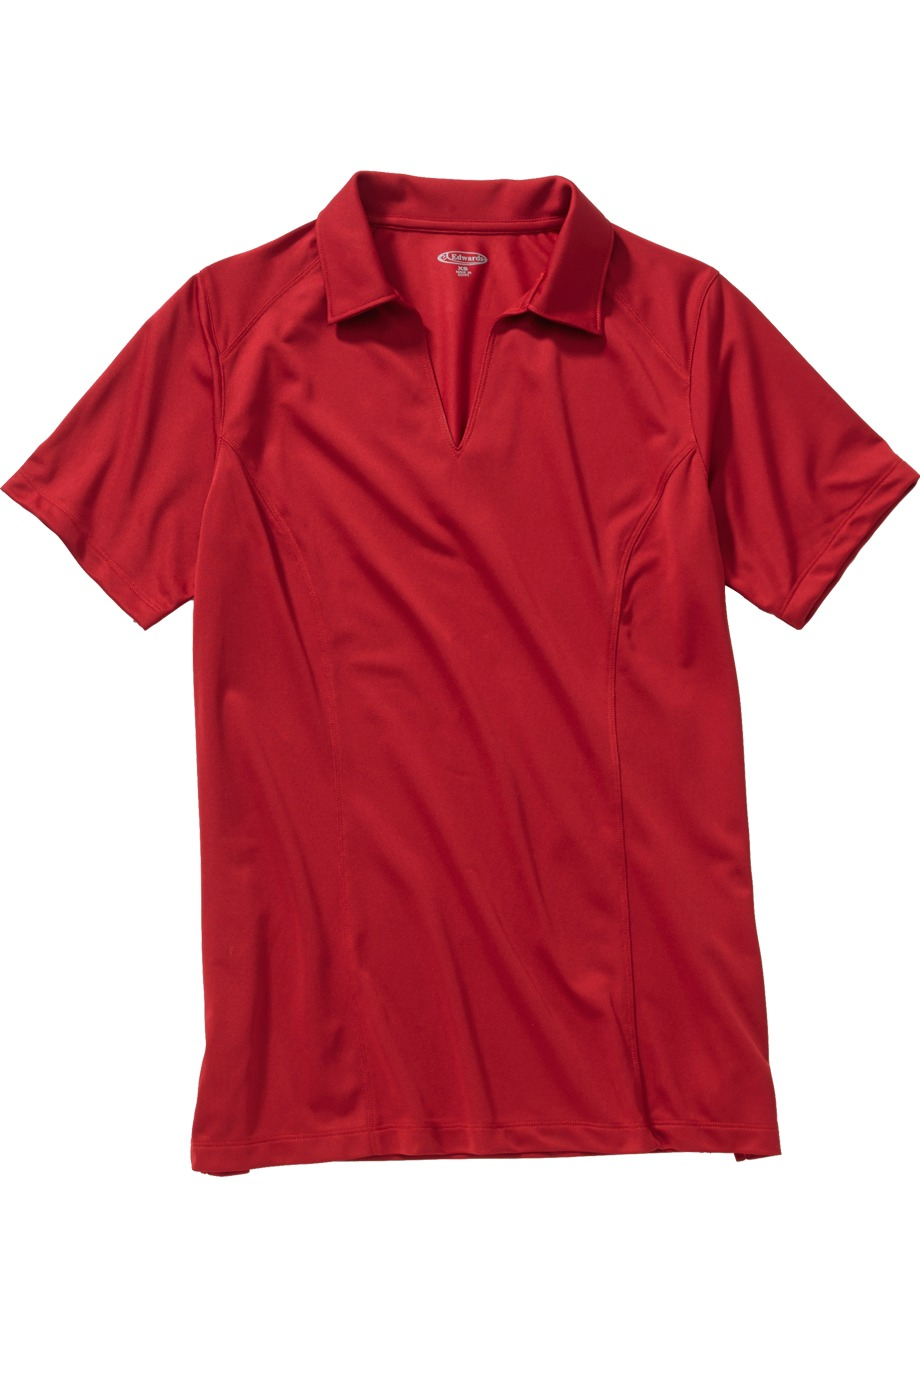 Edwards Garment 5516 - Ladies' Micro-Pique Polo With Self-Fabric Collar